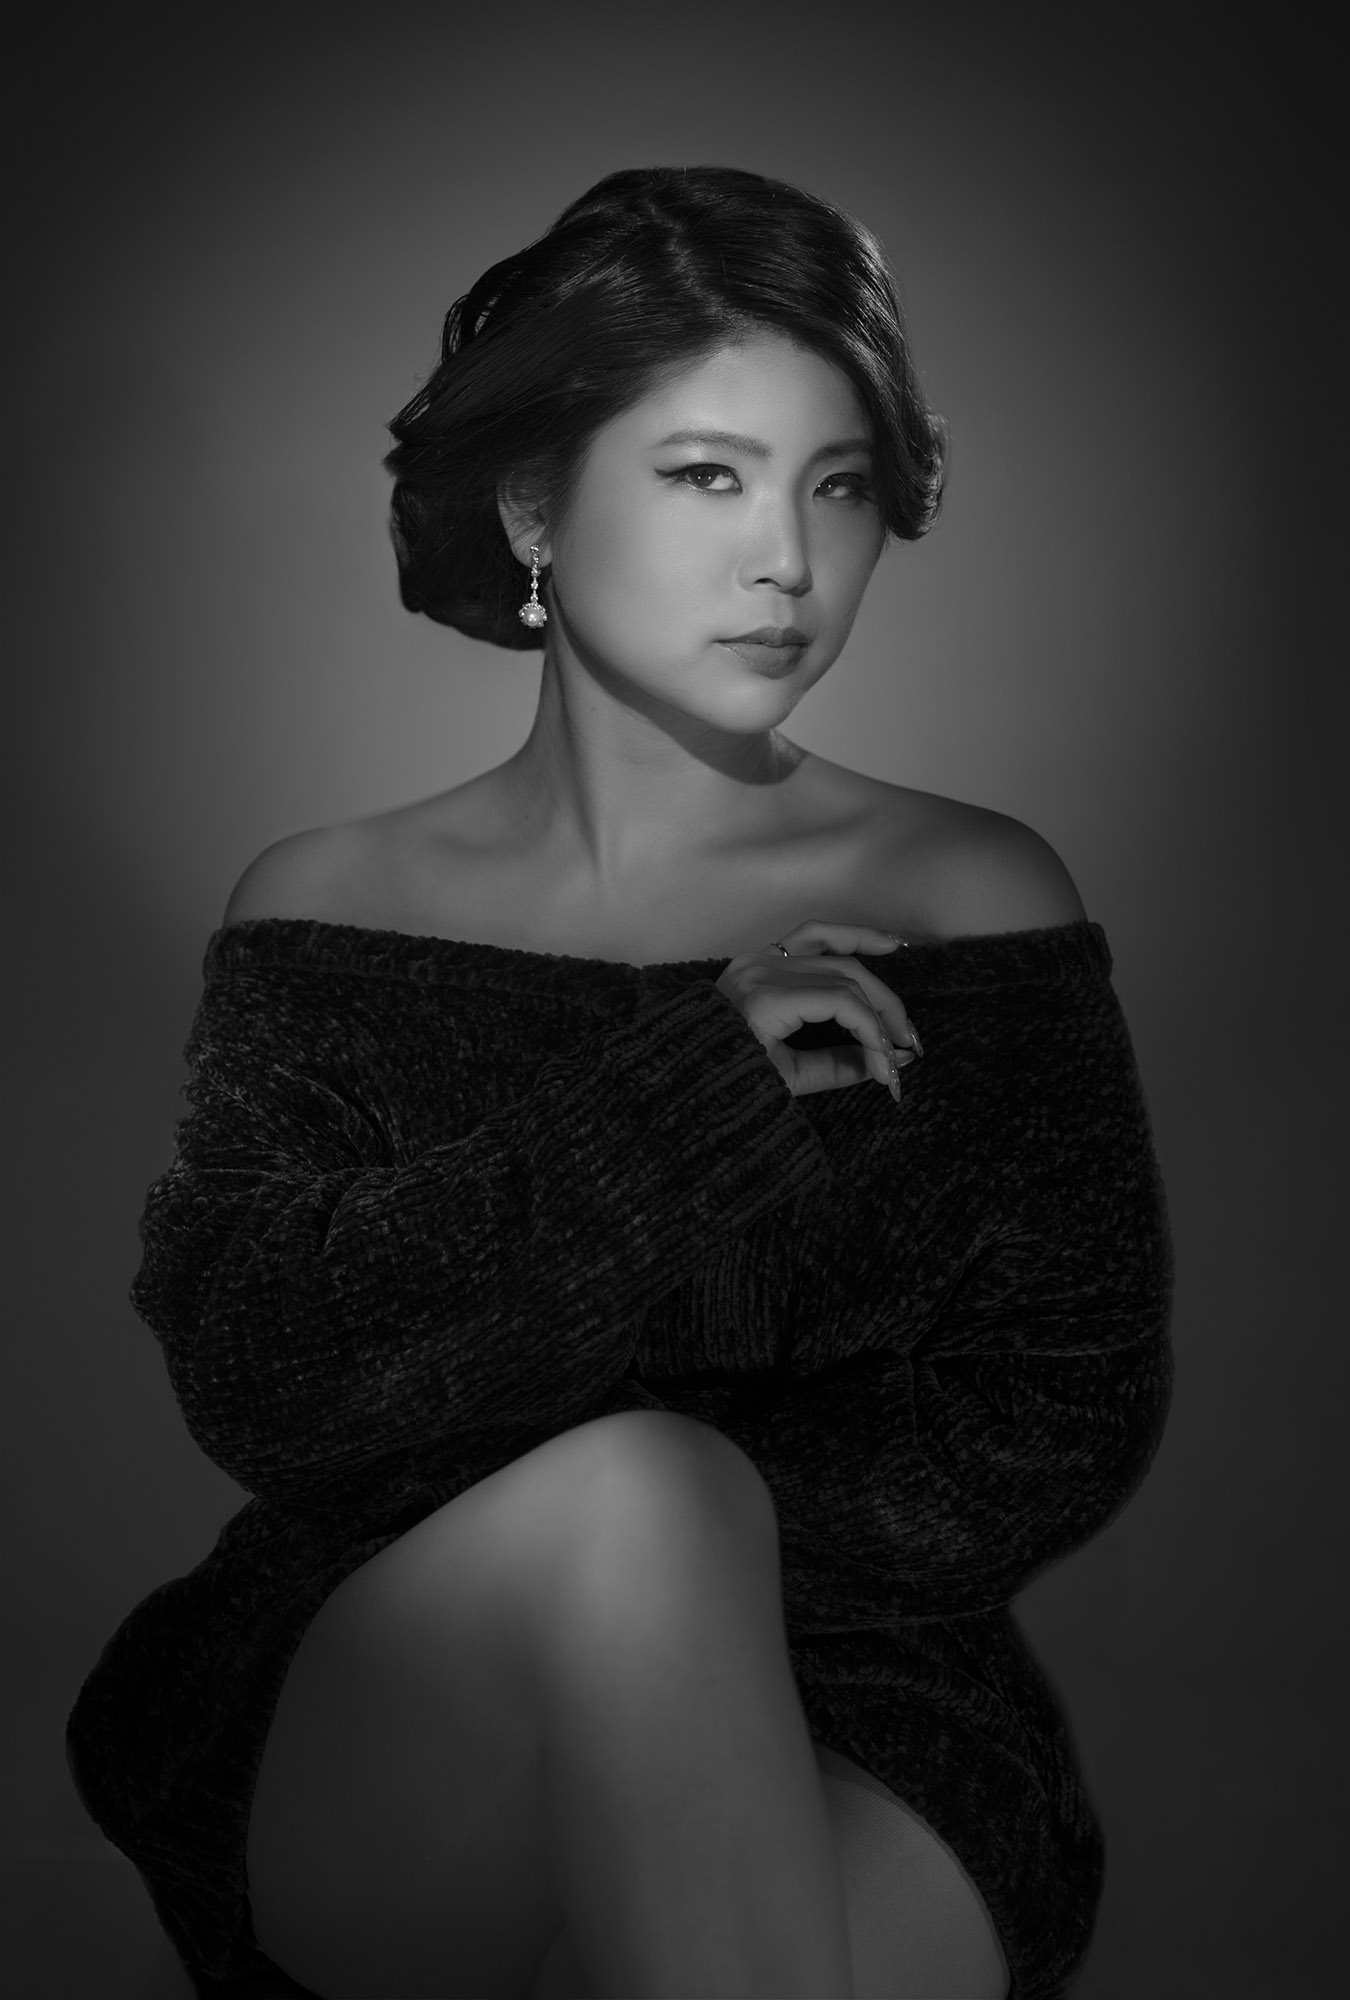 carving, contrast, photography, portrait, black and white, photo, woman, コントラスト、 白黒、 写真、ポートレート、 美しい、 女性